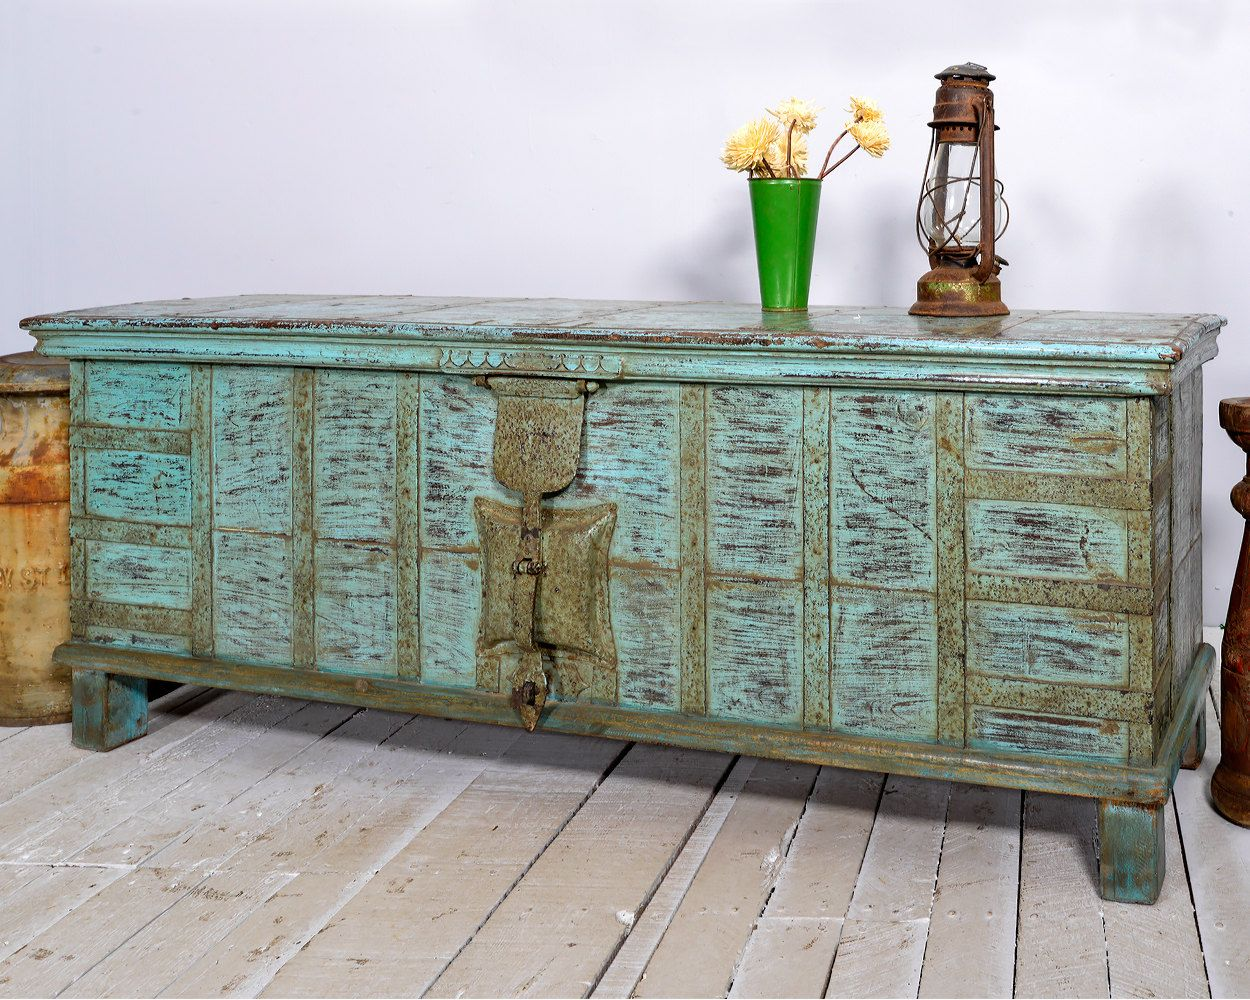 Sale reclaimed antique indian bright turquoise blue industrial sale reclaimed antique indian bright turquoise blue industrial farm chic pitara trunk coffee table storage bench geotapseo Choice Image